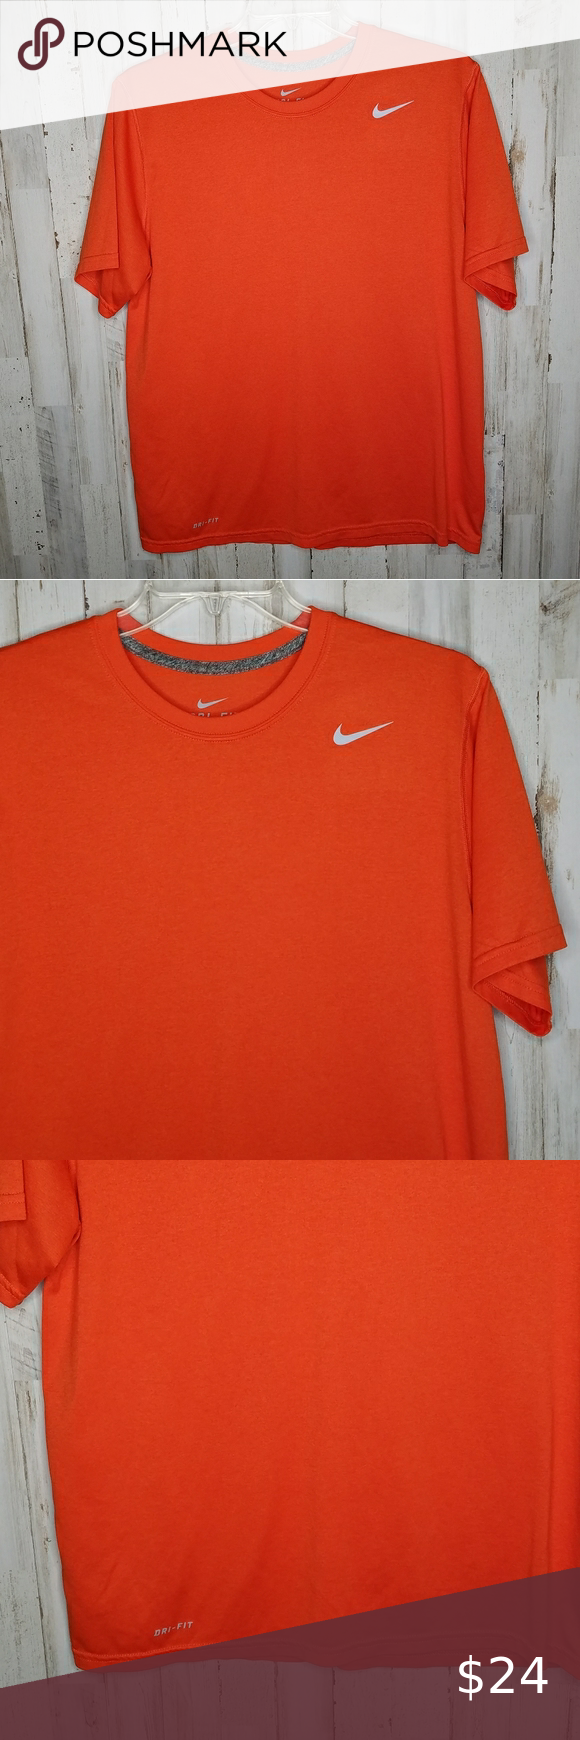 Nike Dri Fit Shirt Short Sleeve Orange Size Large Nike Dri Fit Tshirt Short Sleeve Orange Excellent preowned condition, no stains, no flaws 100% polyester Size Large  Length- 27 inches Chest- 22 inches pit to pit  Inv#009 Nike Shirts Tees - Short Sleeve